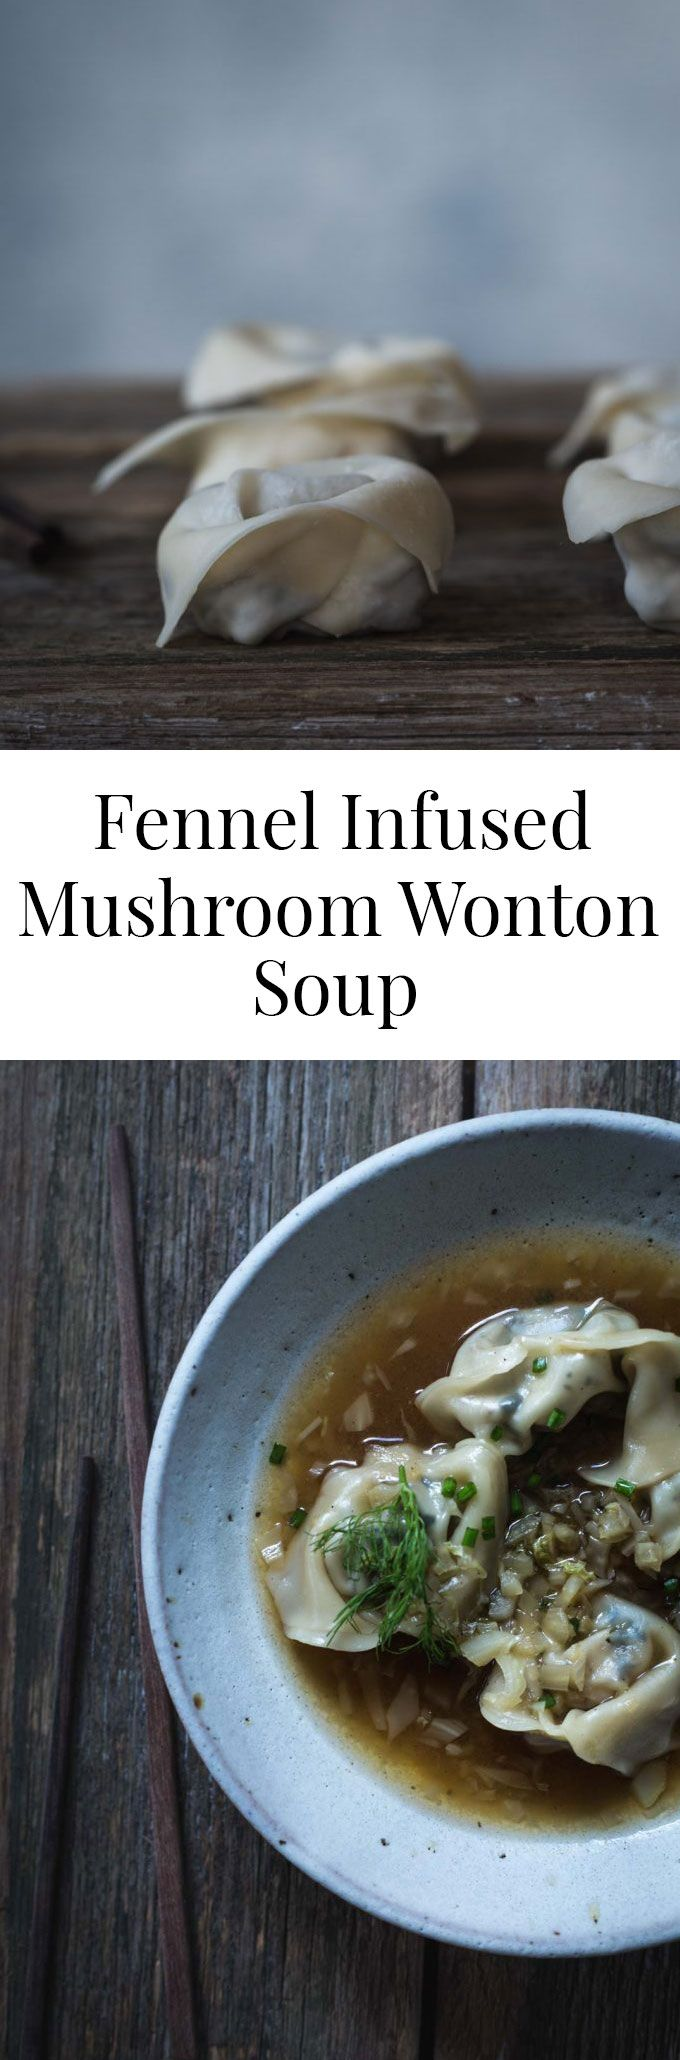 This vegan Fennel Infused Mushroom Wonton Soup is simple. But with a fennel, slightly peppery broth and delicate mushroom wontons it's also a little special.